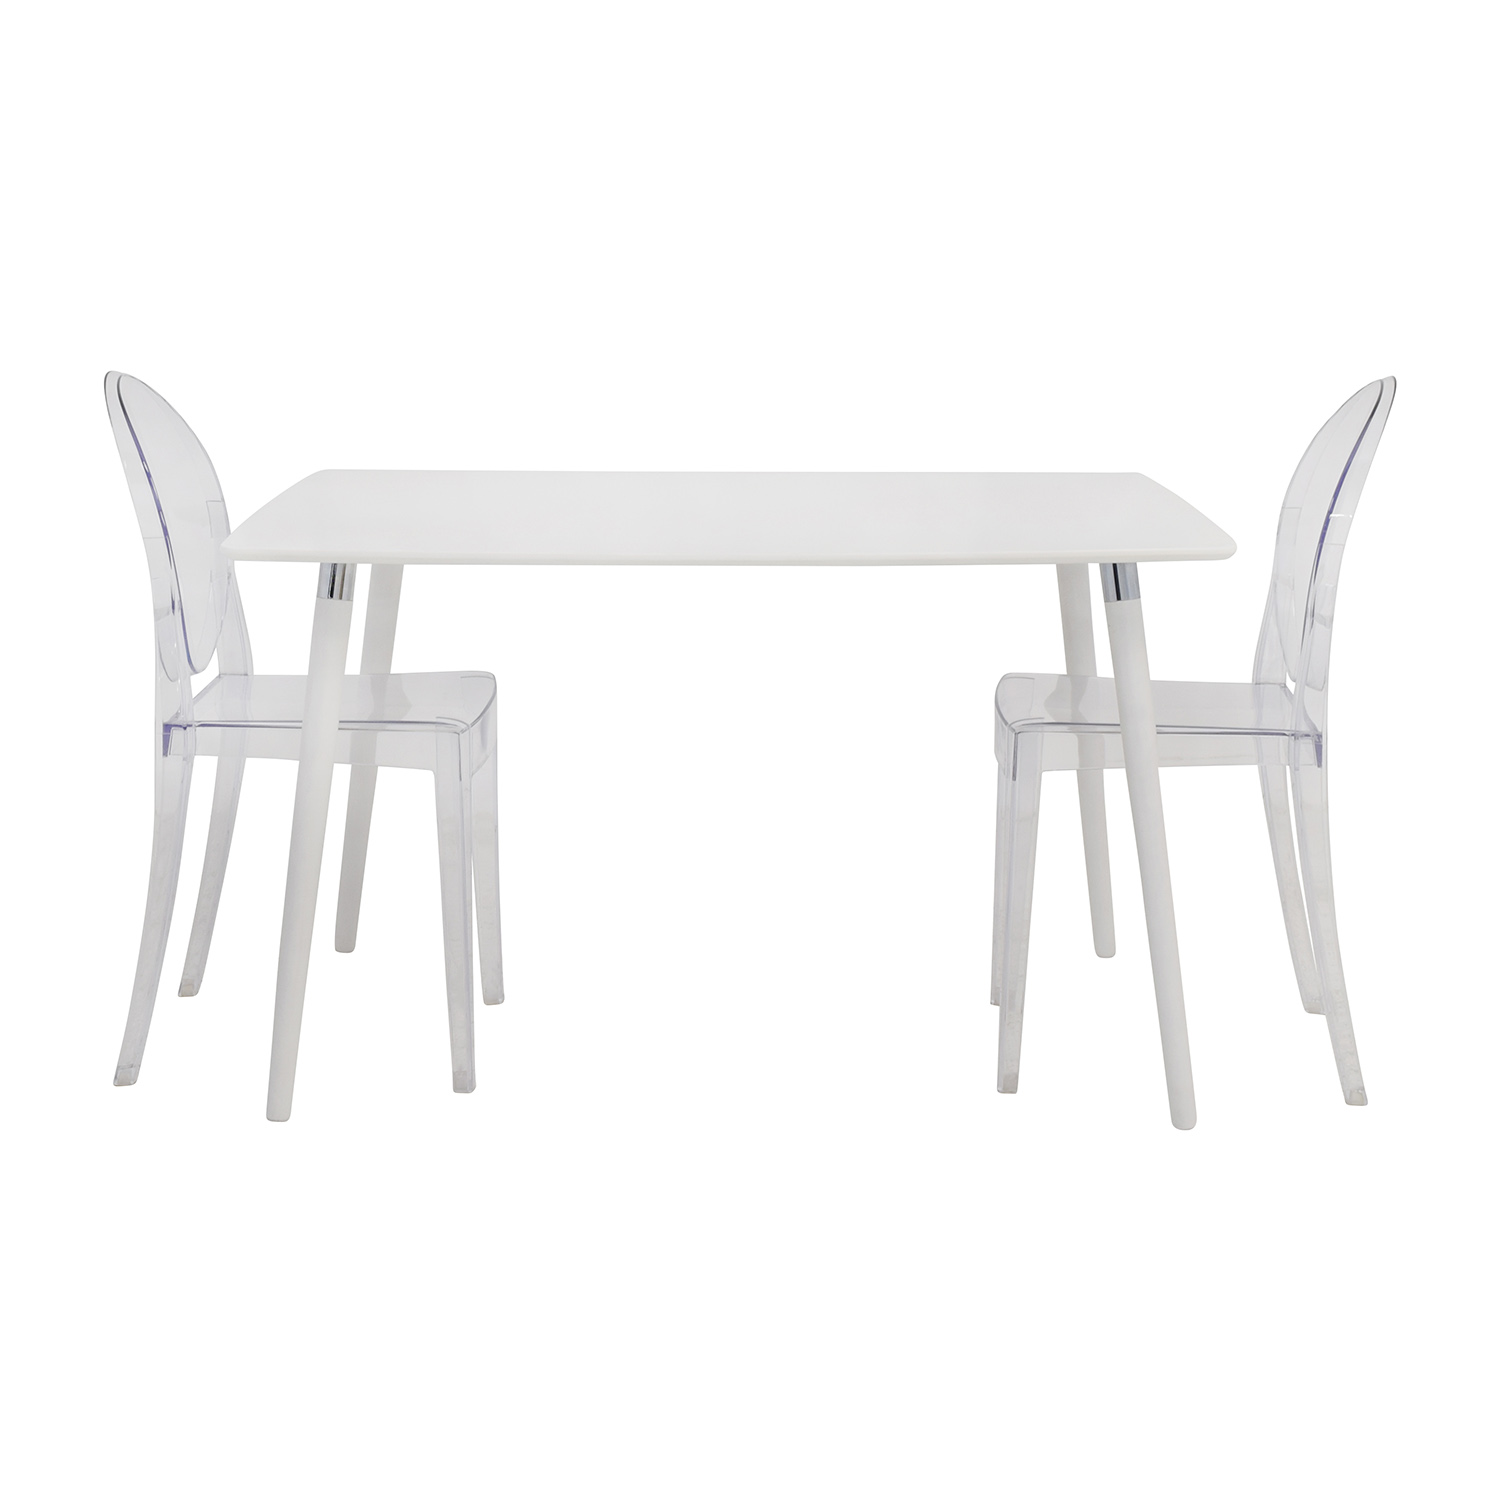 80% OFF - White Dining Table Set with Two Ghost Chairs / Tables